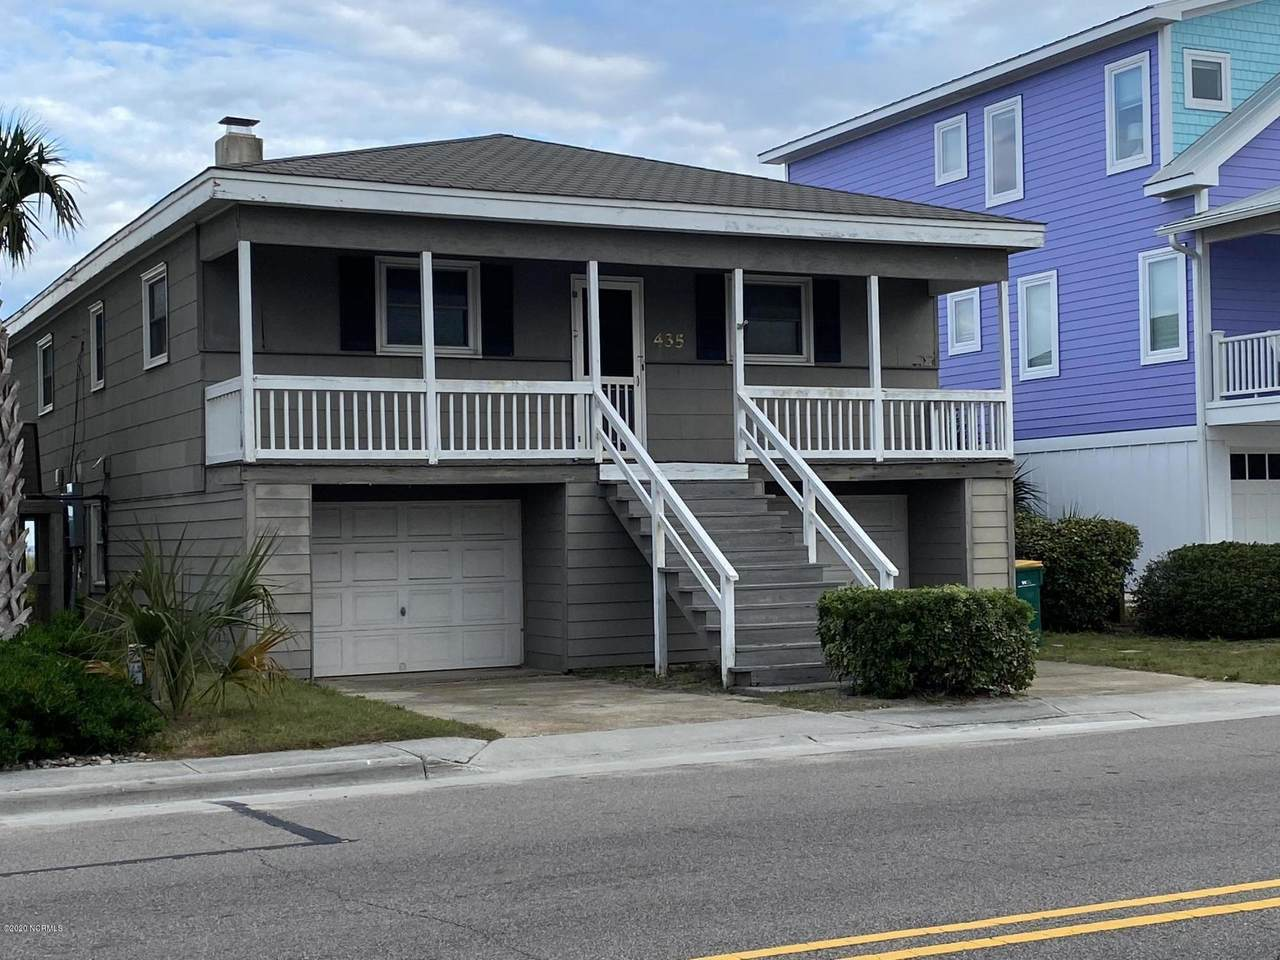 435 Fort Fisher Boulevard - Photo 1